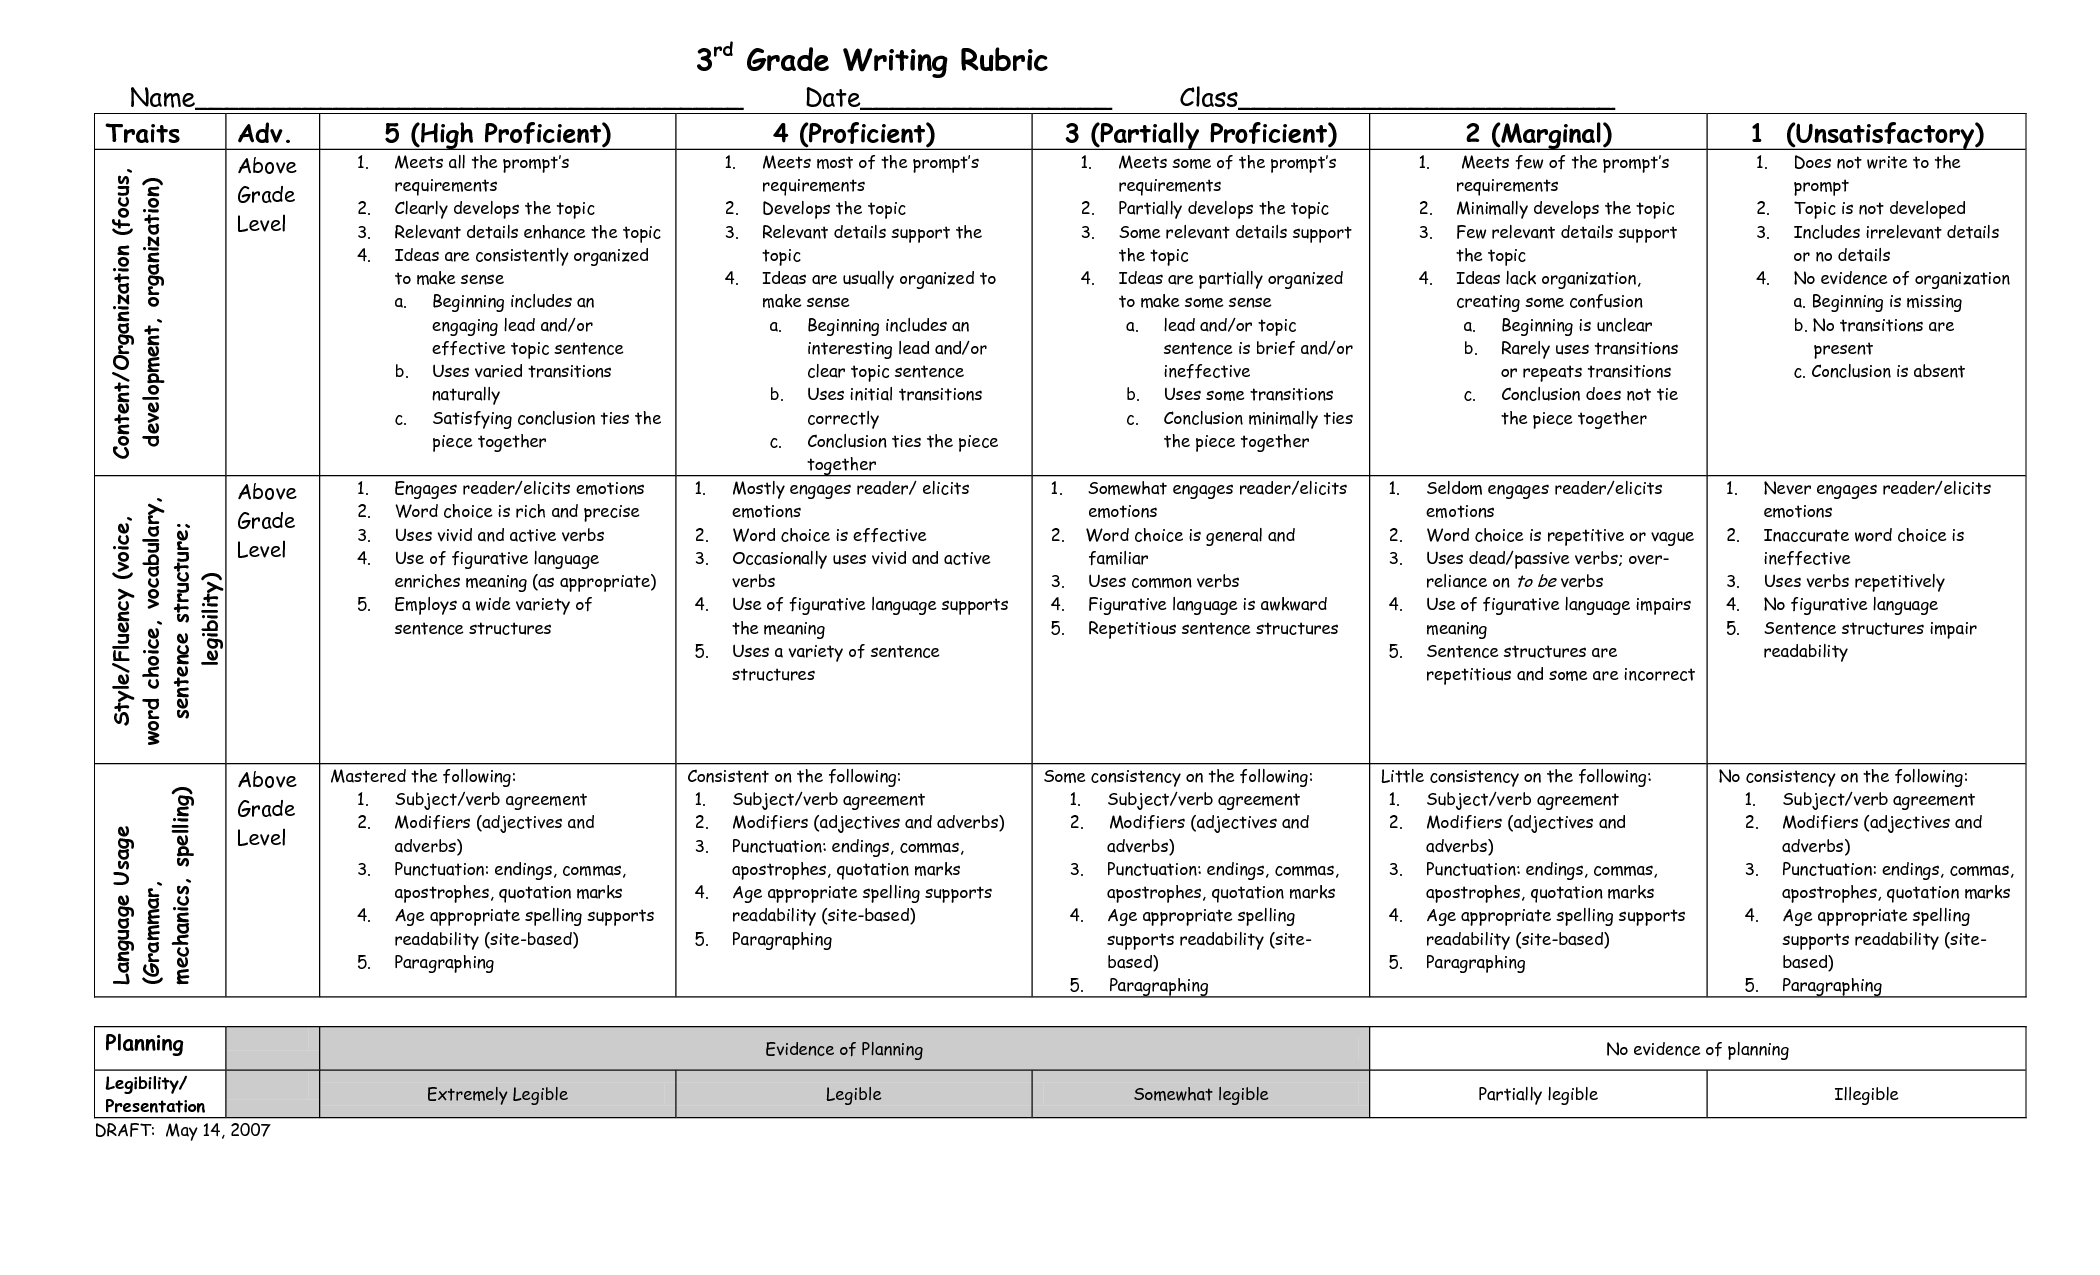 writing assignment rubric 5th grade Writing assignment rubric printable (3rd - 5th grade) - teachervisioncom see more writing rubrics for 5th grade - sally ginburg - teacherspayteacherscom.